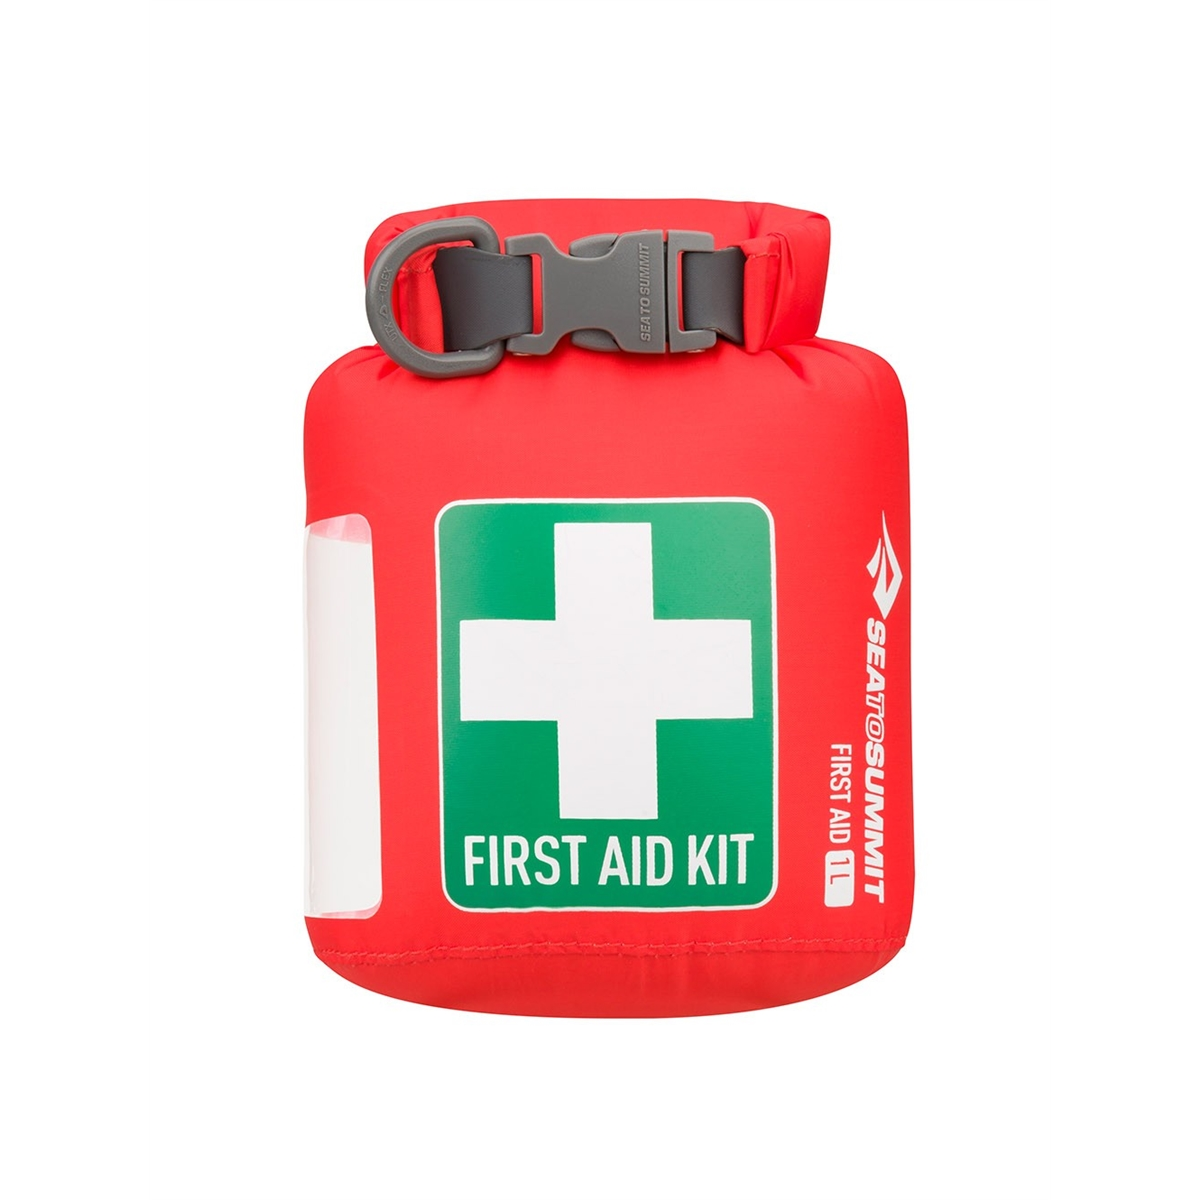 SACO ESTANQUE FIRST AID DRY SACK DAY USE 1L - SEA TO SUMMIT